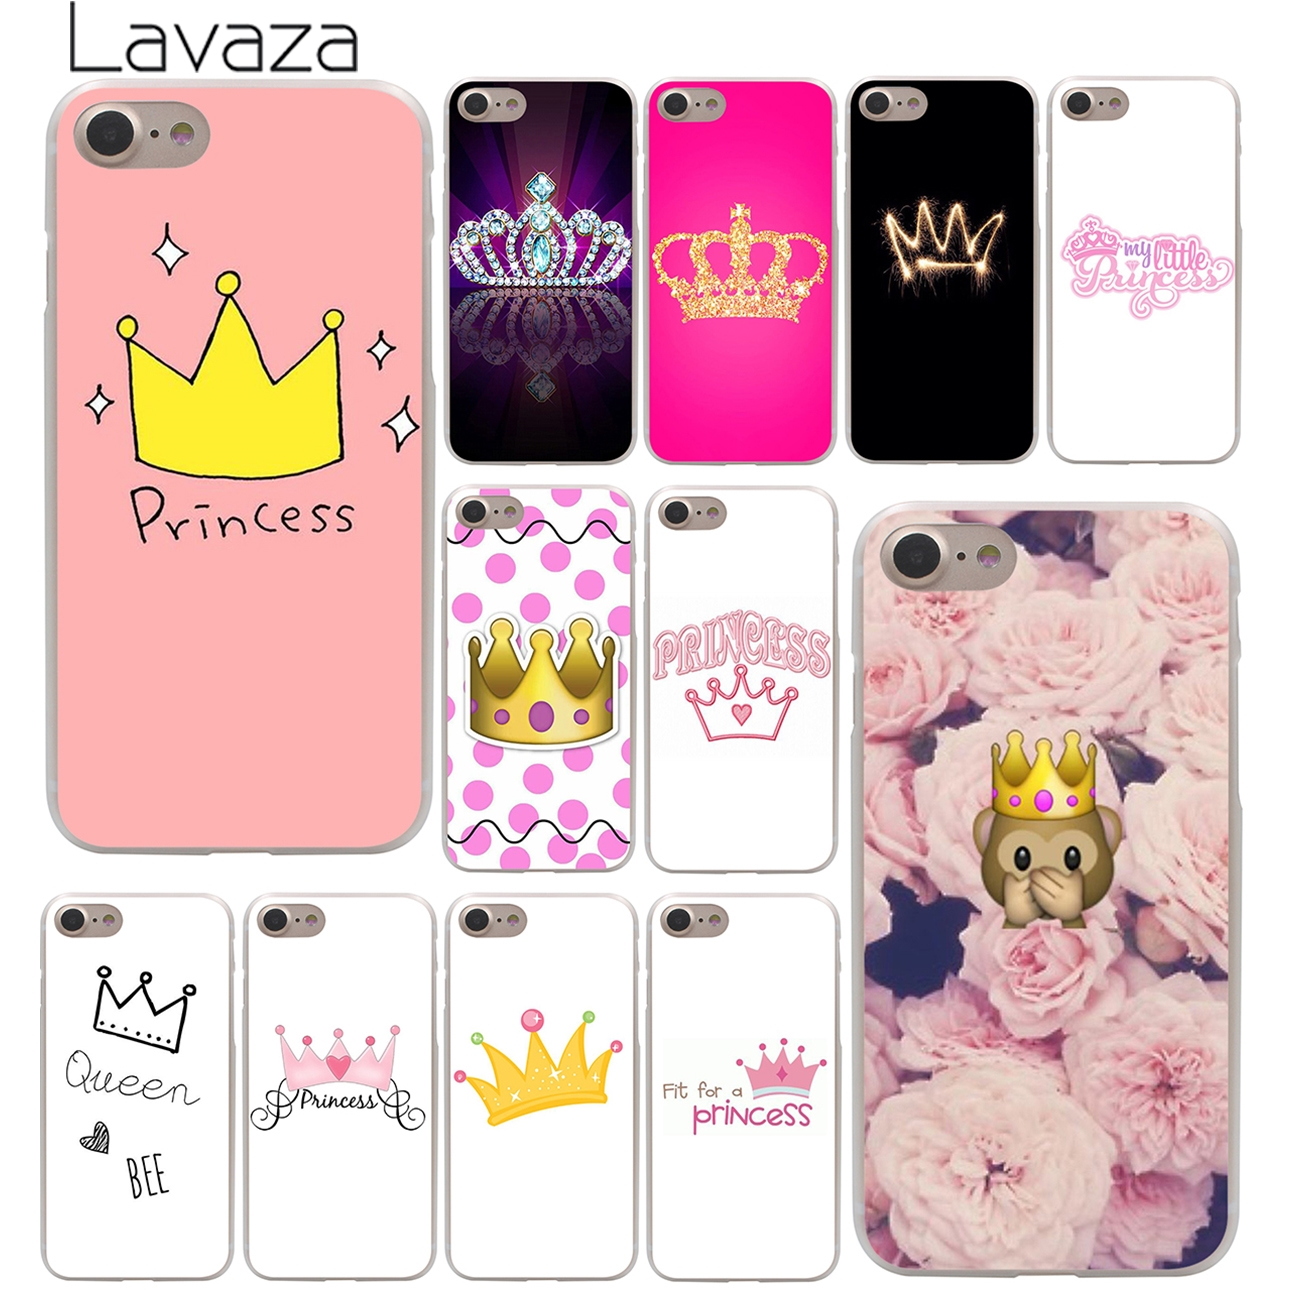 Lavaza PRINCESS Queen boss crown king Hard Phone Cover Case for Apple iPhone X XR XS Max 6 6S 7